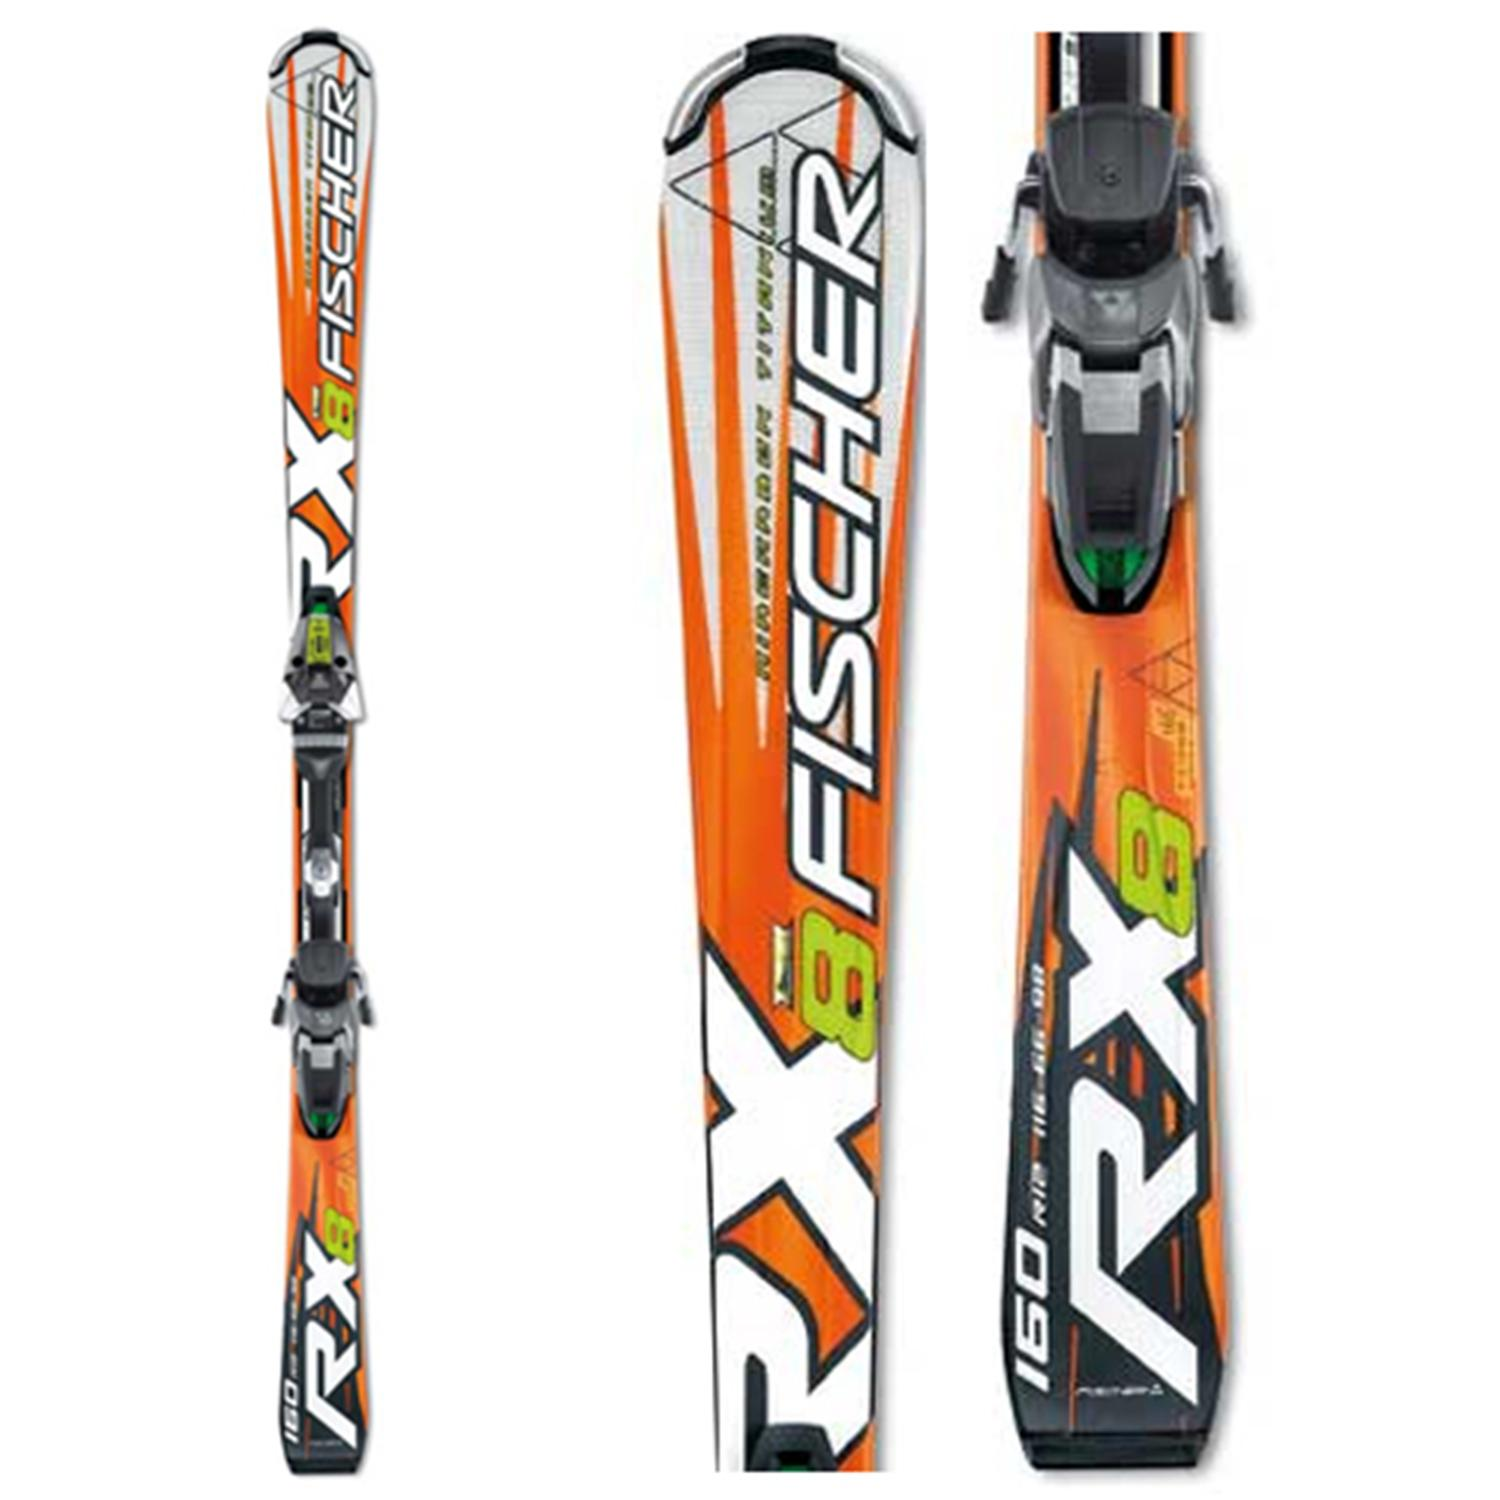 Fischer RX8 Skis + Bindings - Used 2007